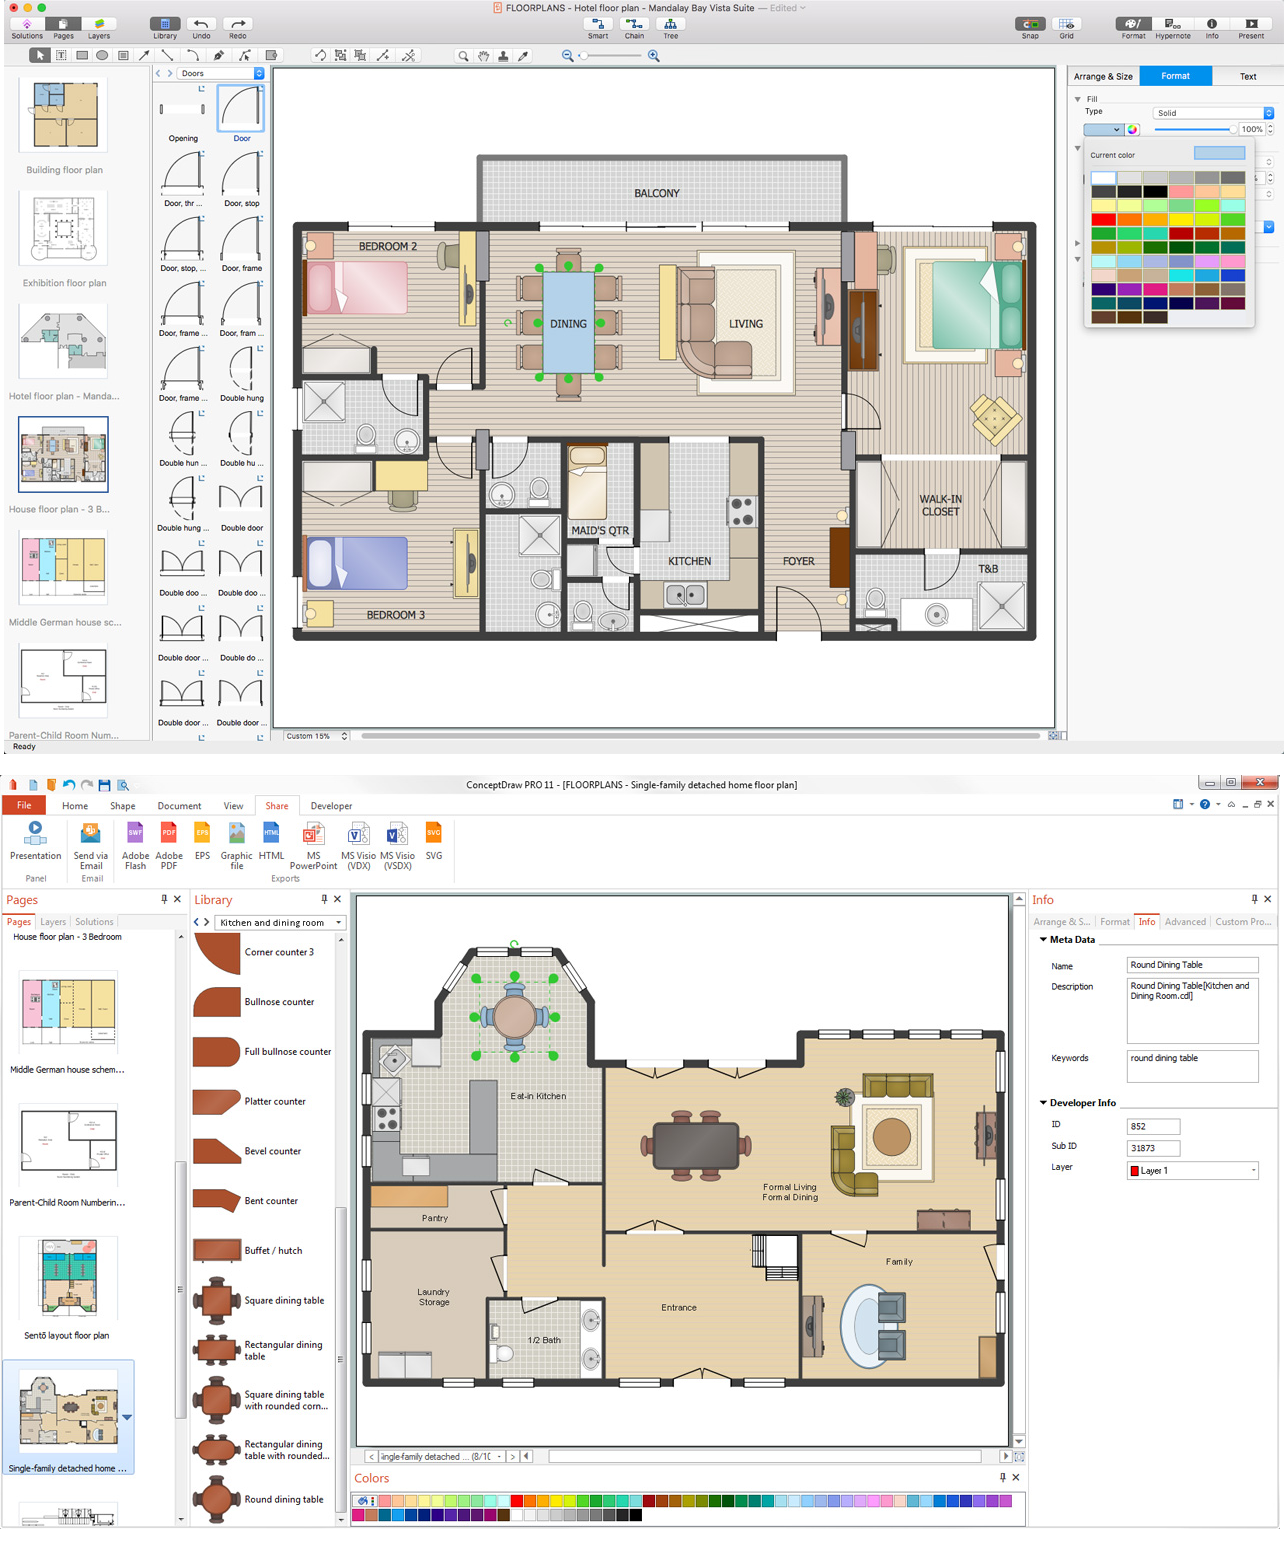 How To Use Appliances Symbols For Building Plan How To Create Restaurant Floor Plan In Minutes Restaurant Floor Plan Software Kitchen Symbols For Floor Plans